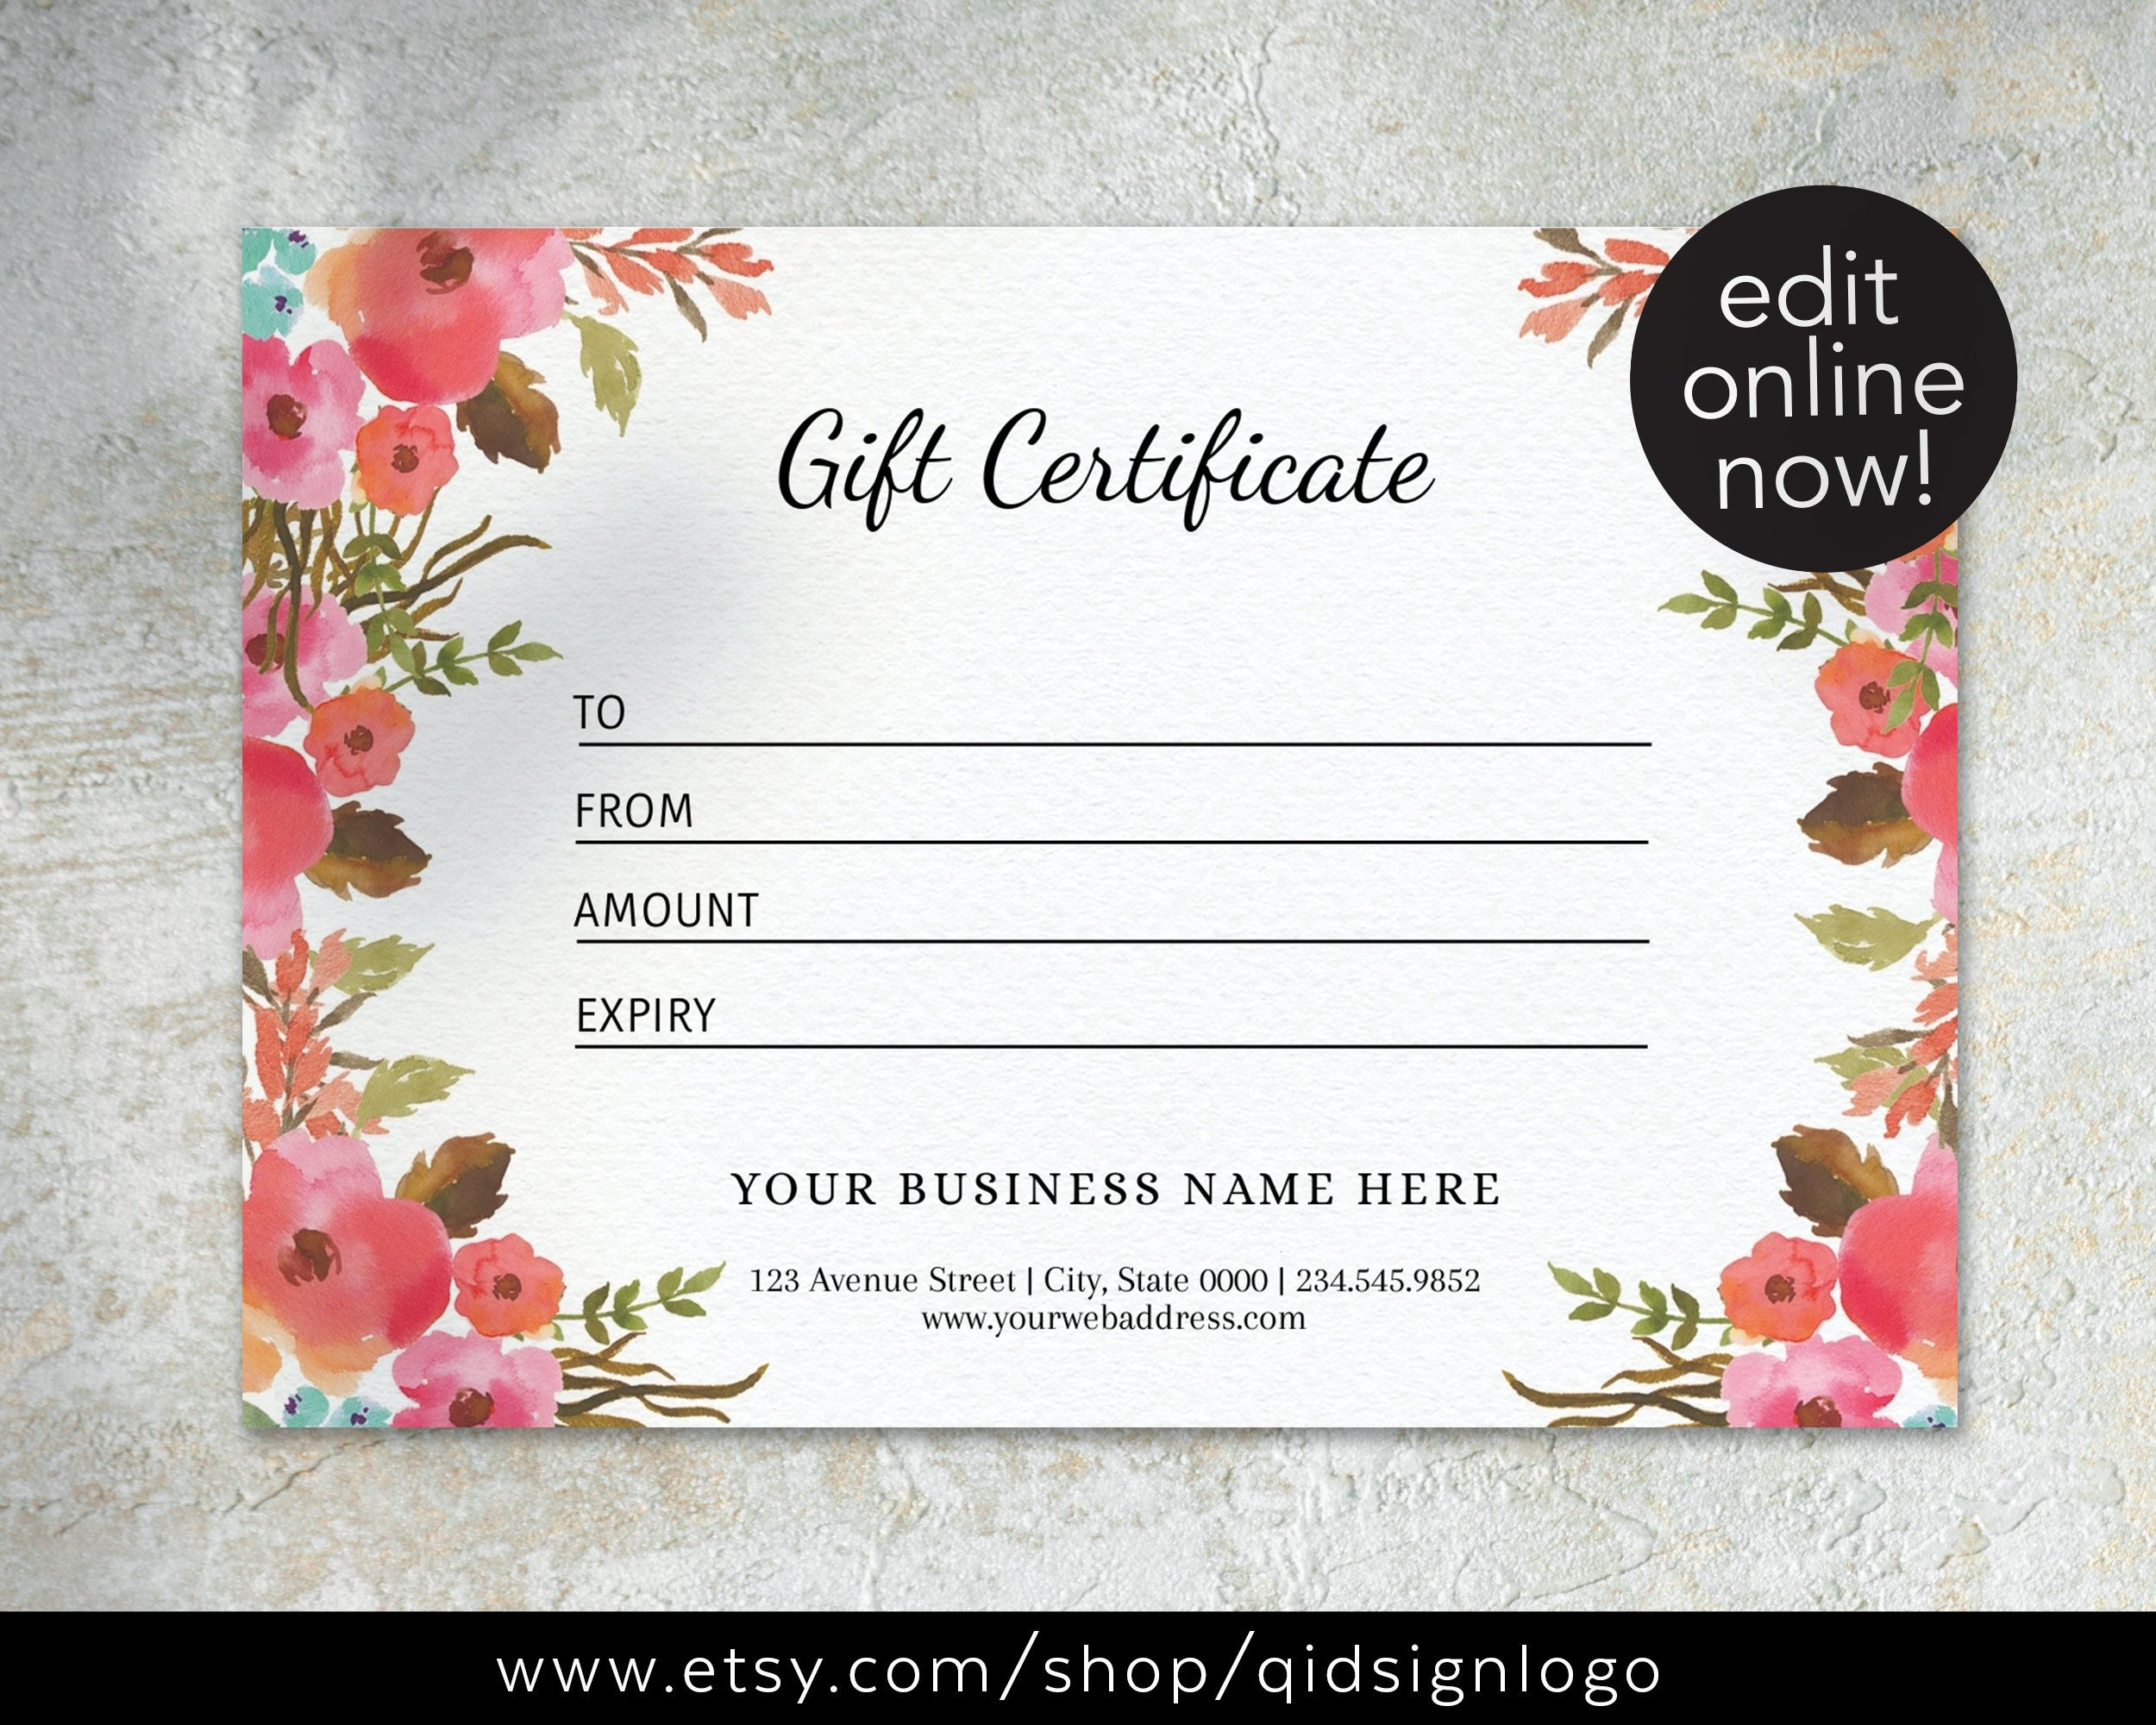 Premade Gift Card Template Editable Gift Certificate Diy Voucher Certificate Business Template Shop Voucher Floral Design In 2021 Gift Card Template Card Template Gift Voucher Design